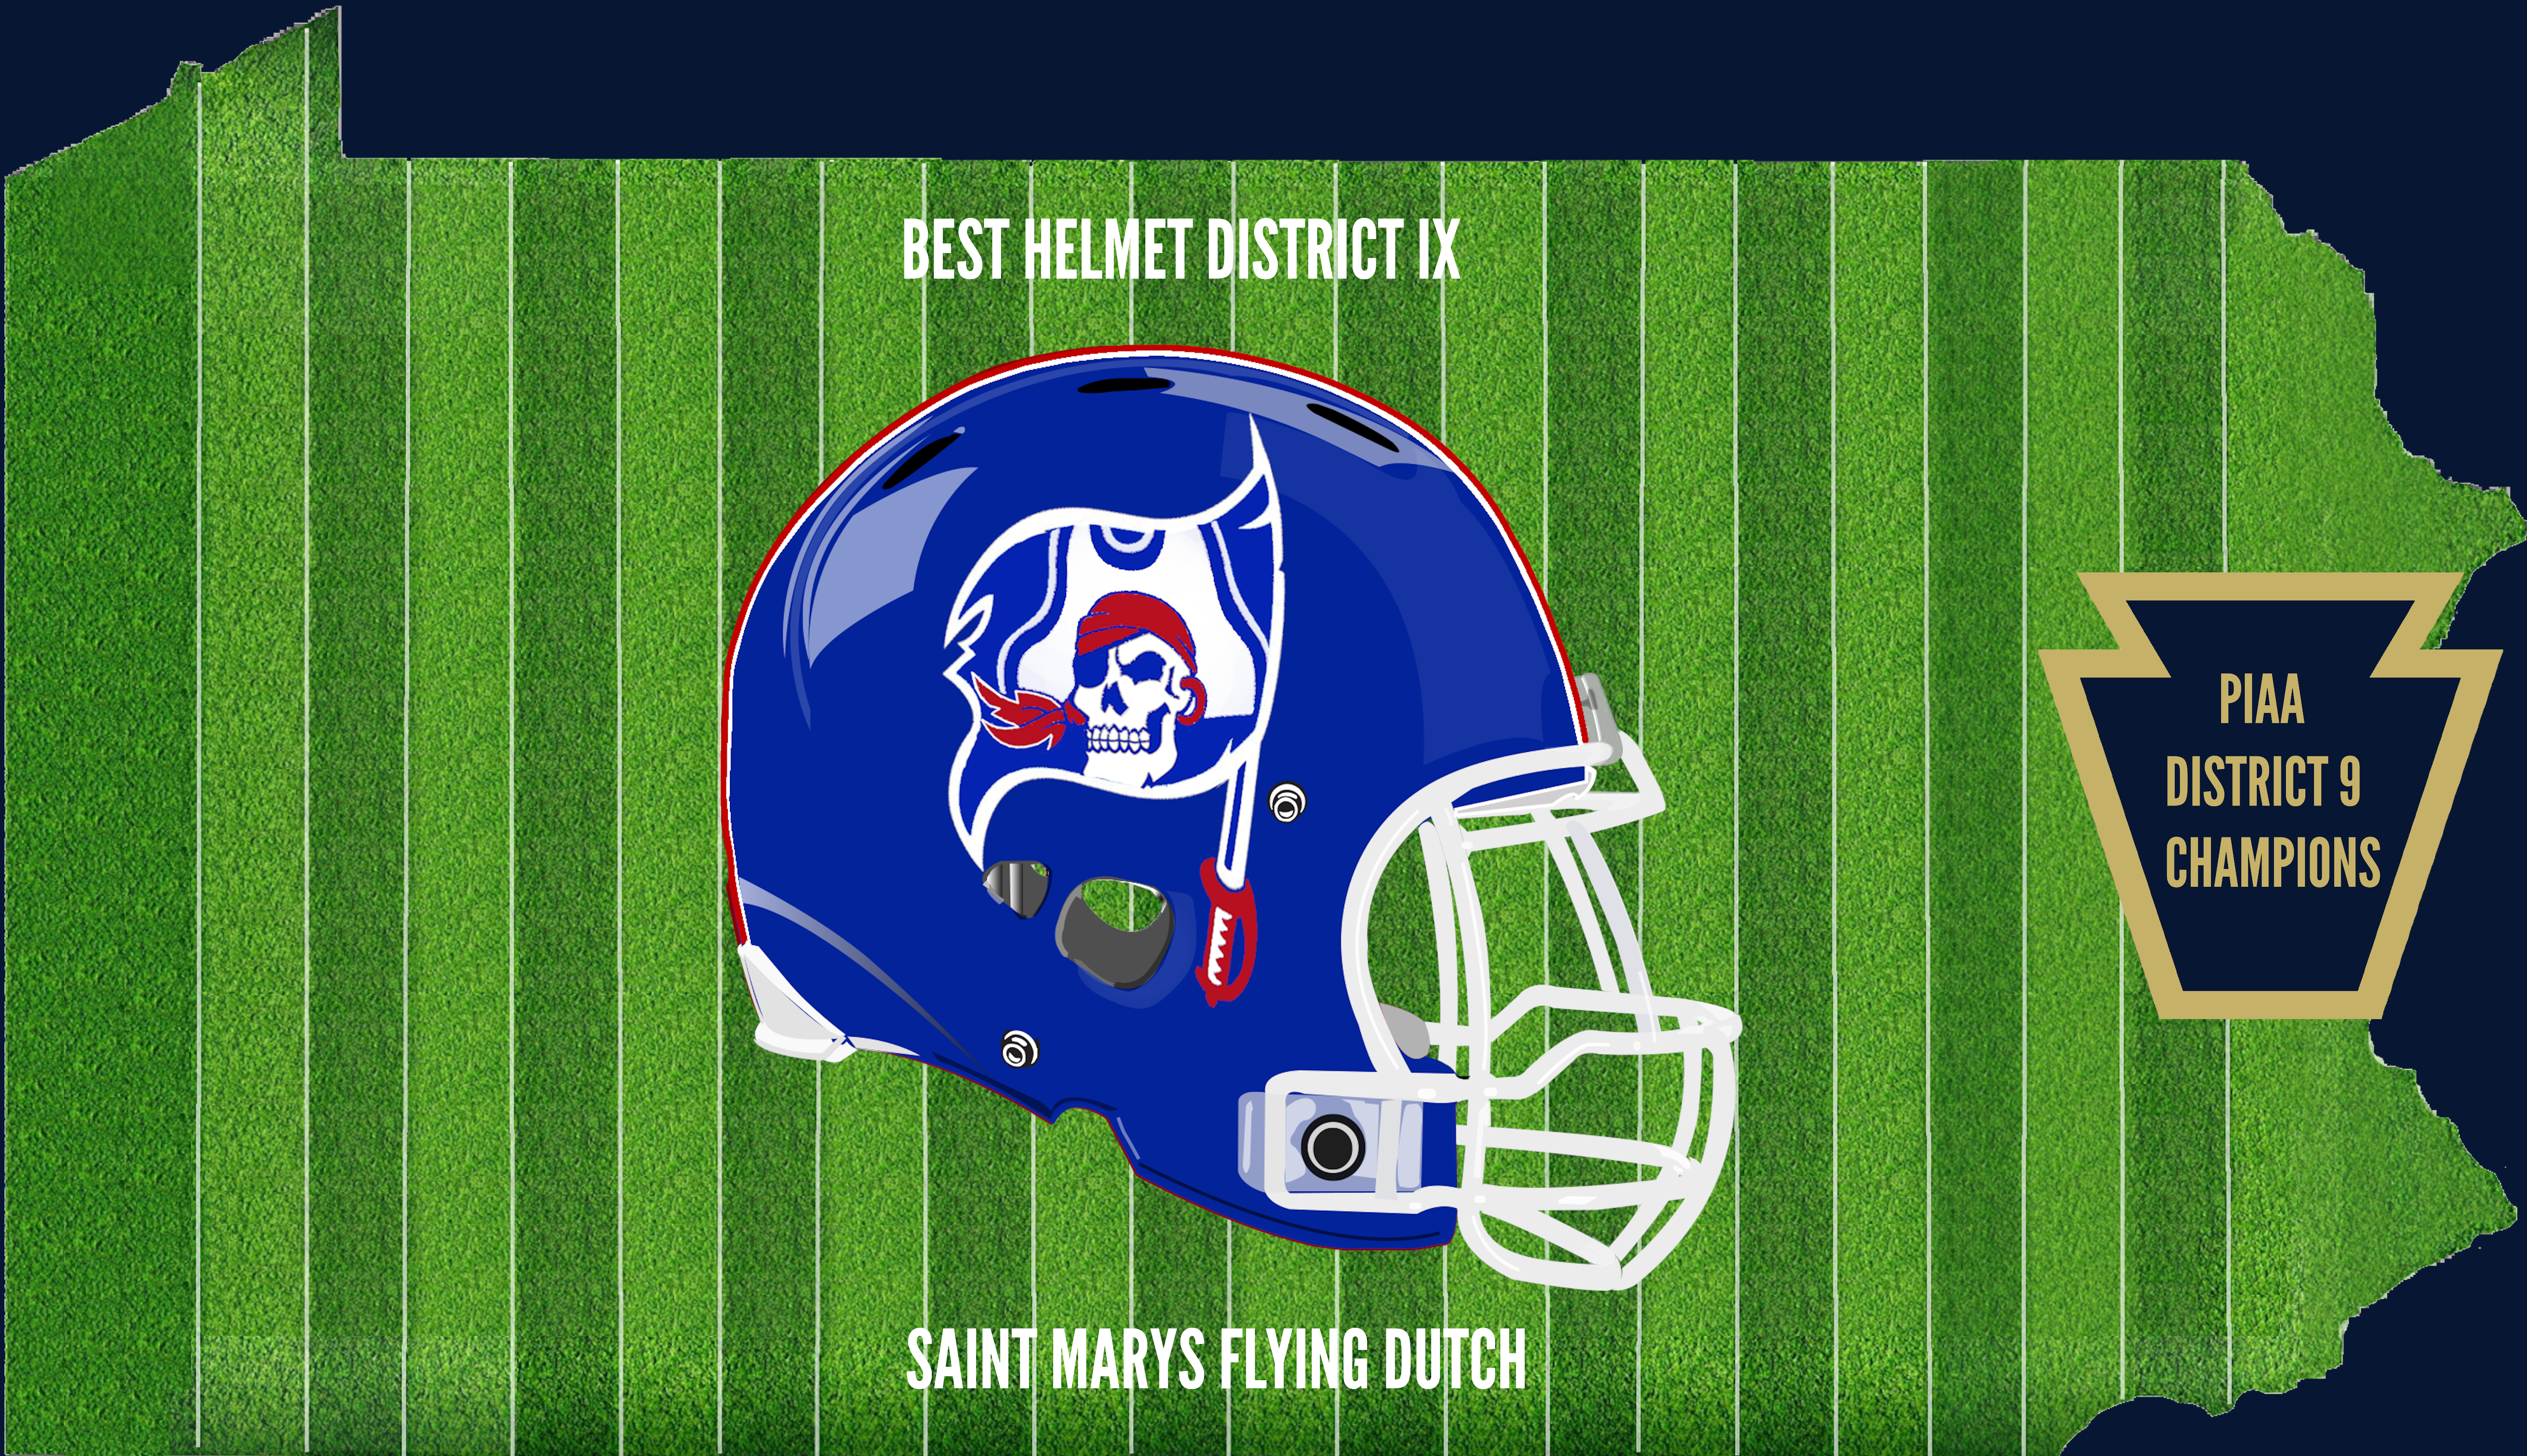 District 9 Champion Helmet (1)